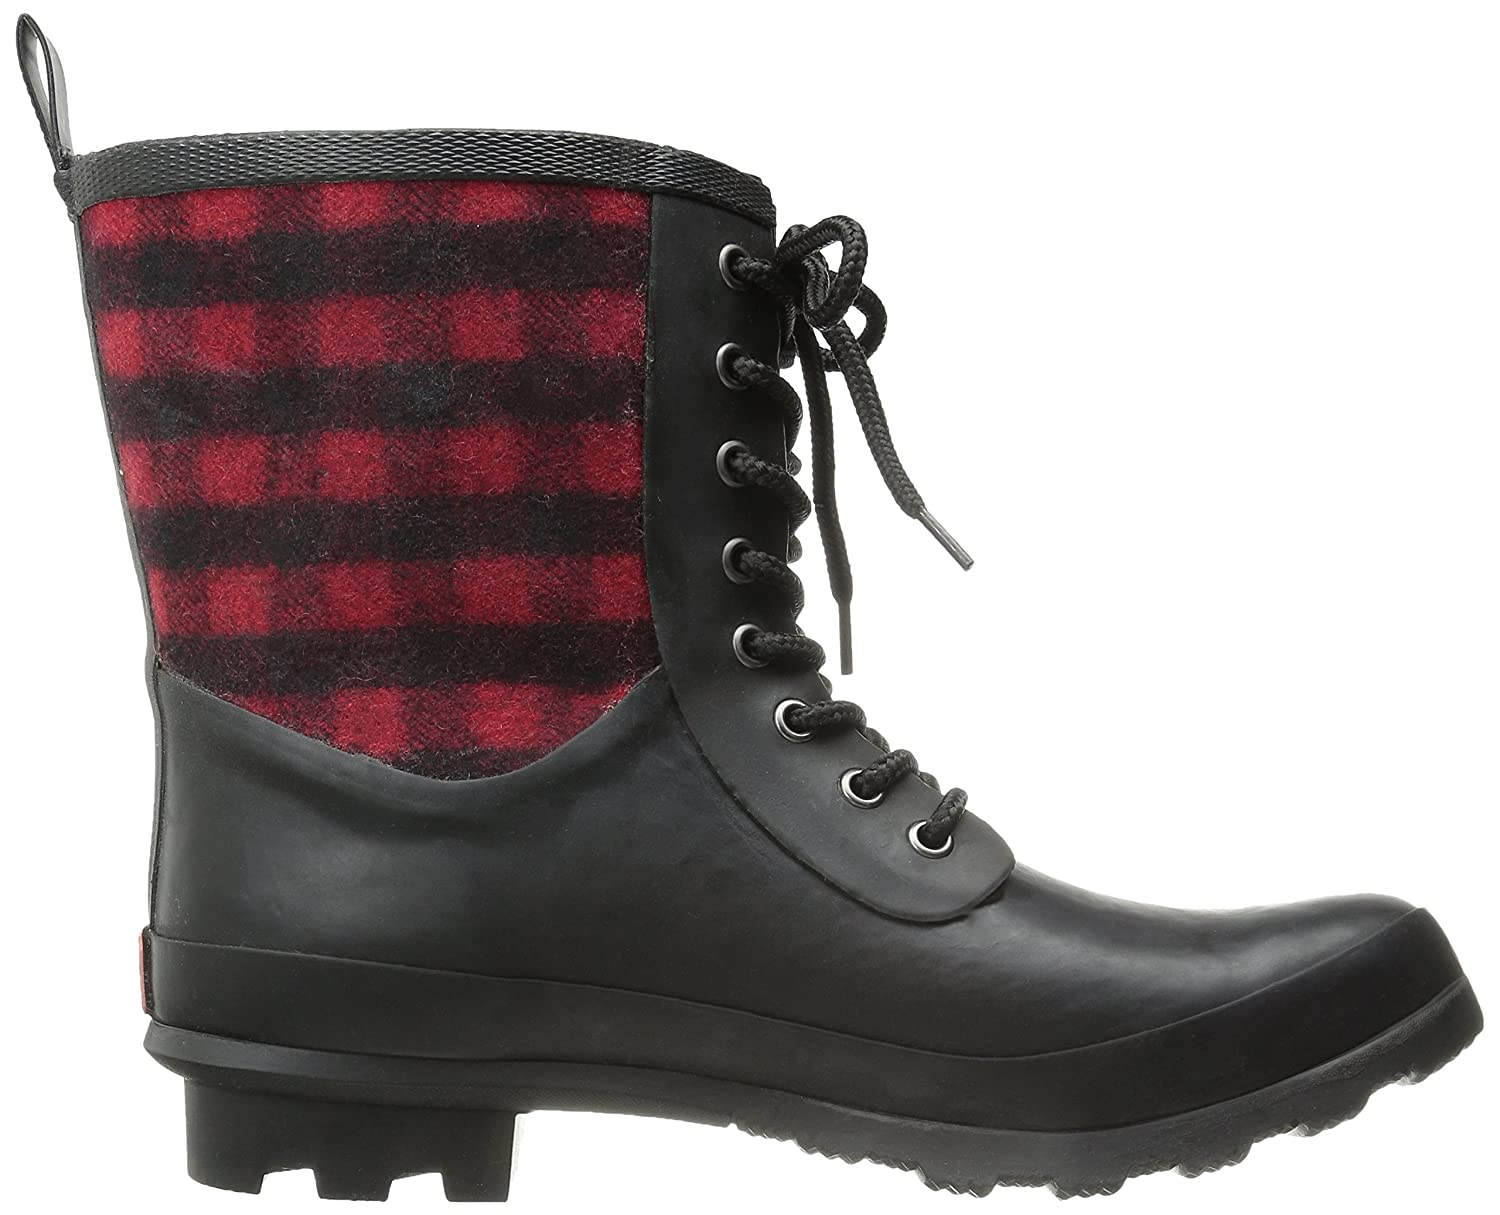 Cara Plaid Rain Boot Chooka